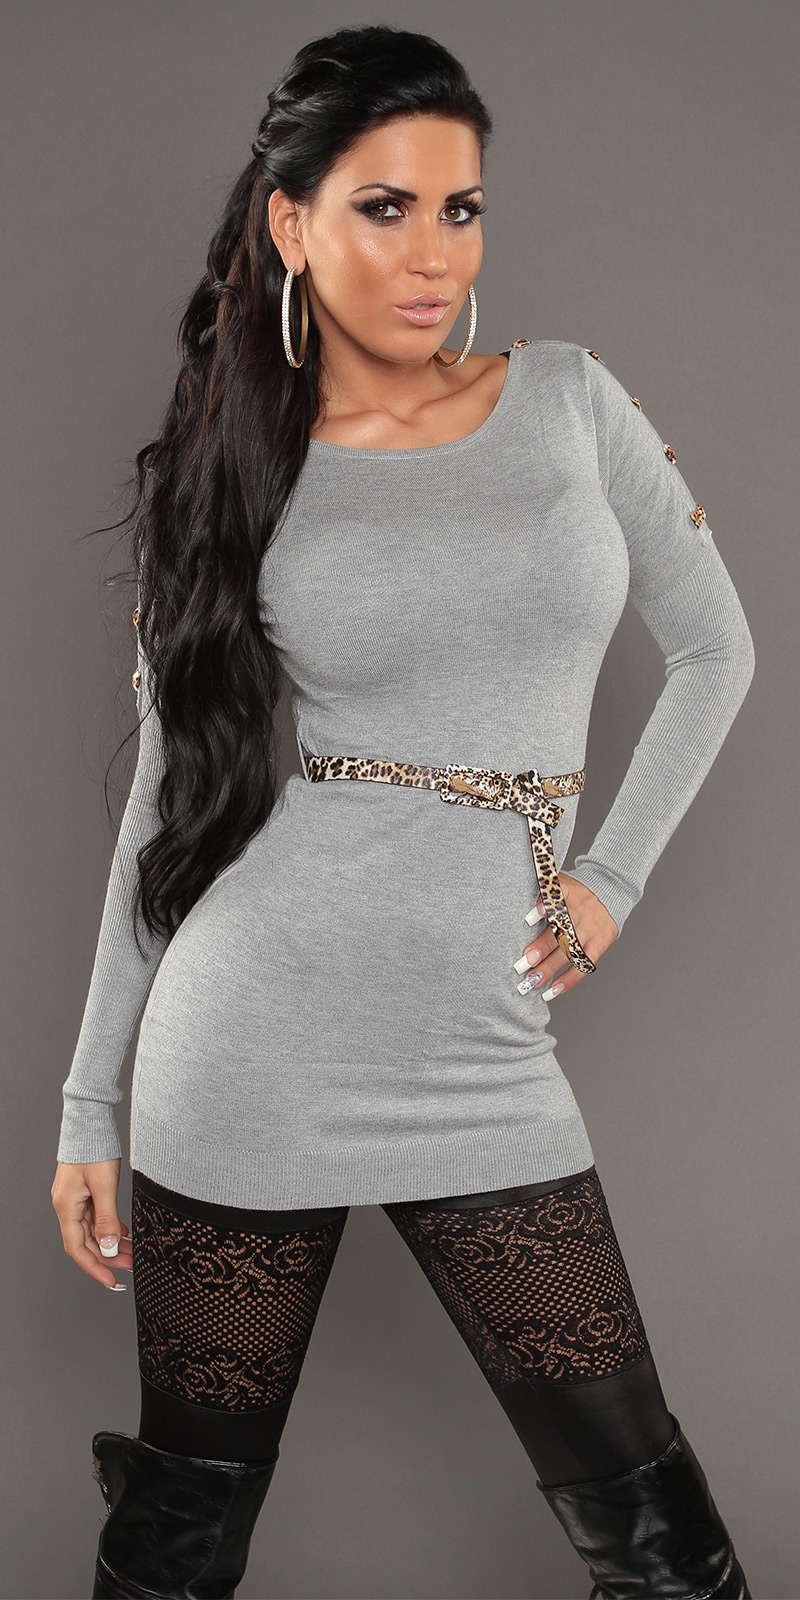 Soft Knit Jumper with Open Shoulders & Leopard Belt - Grey - Click Image to Close